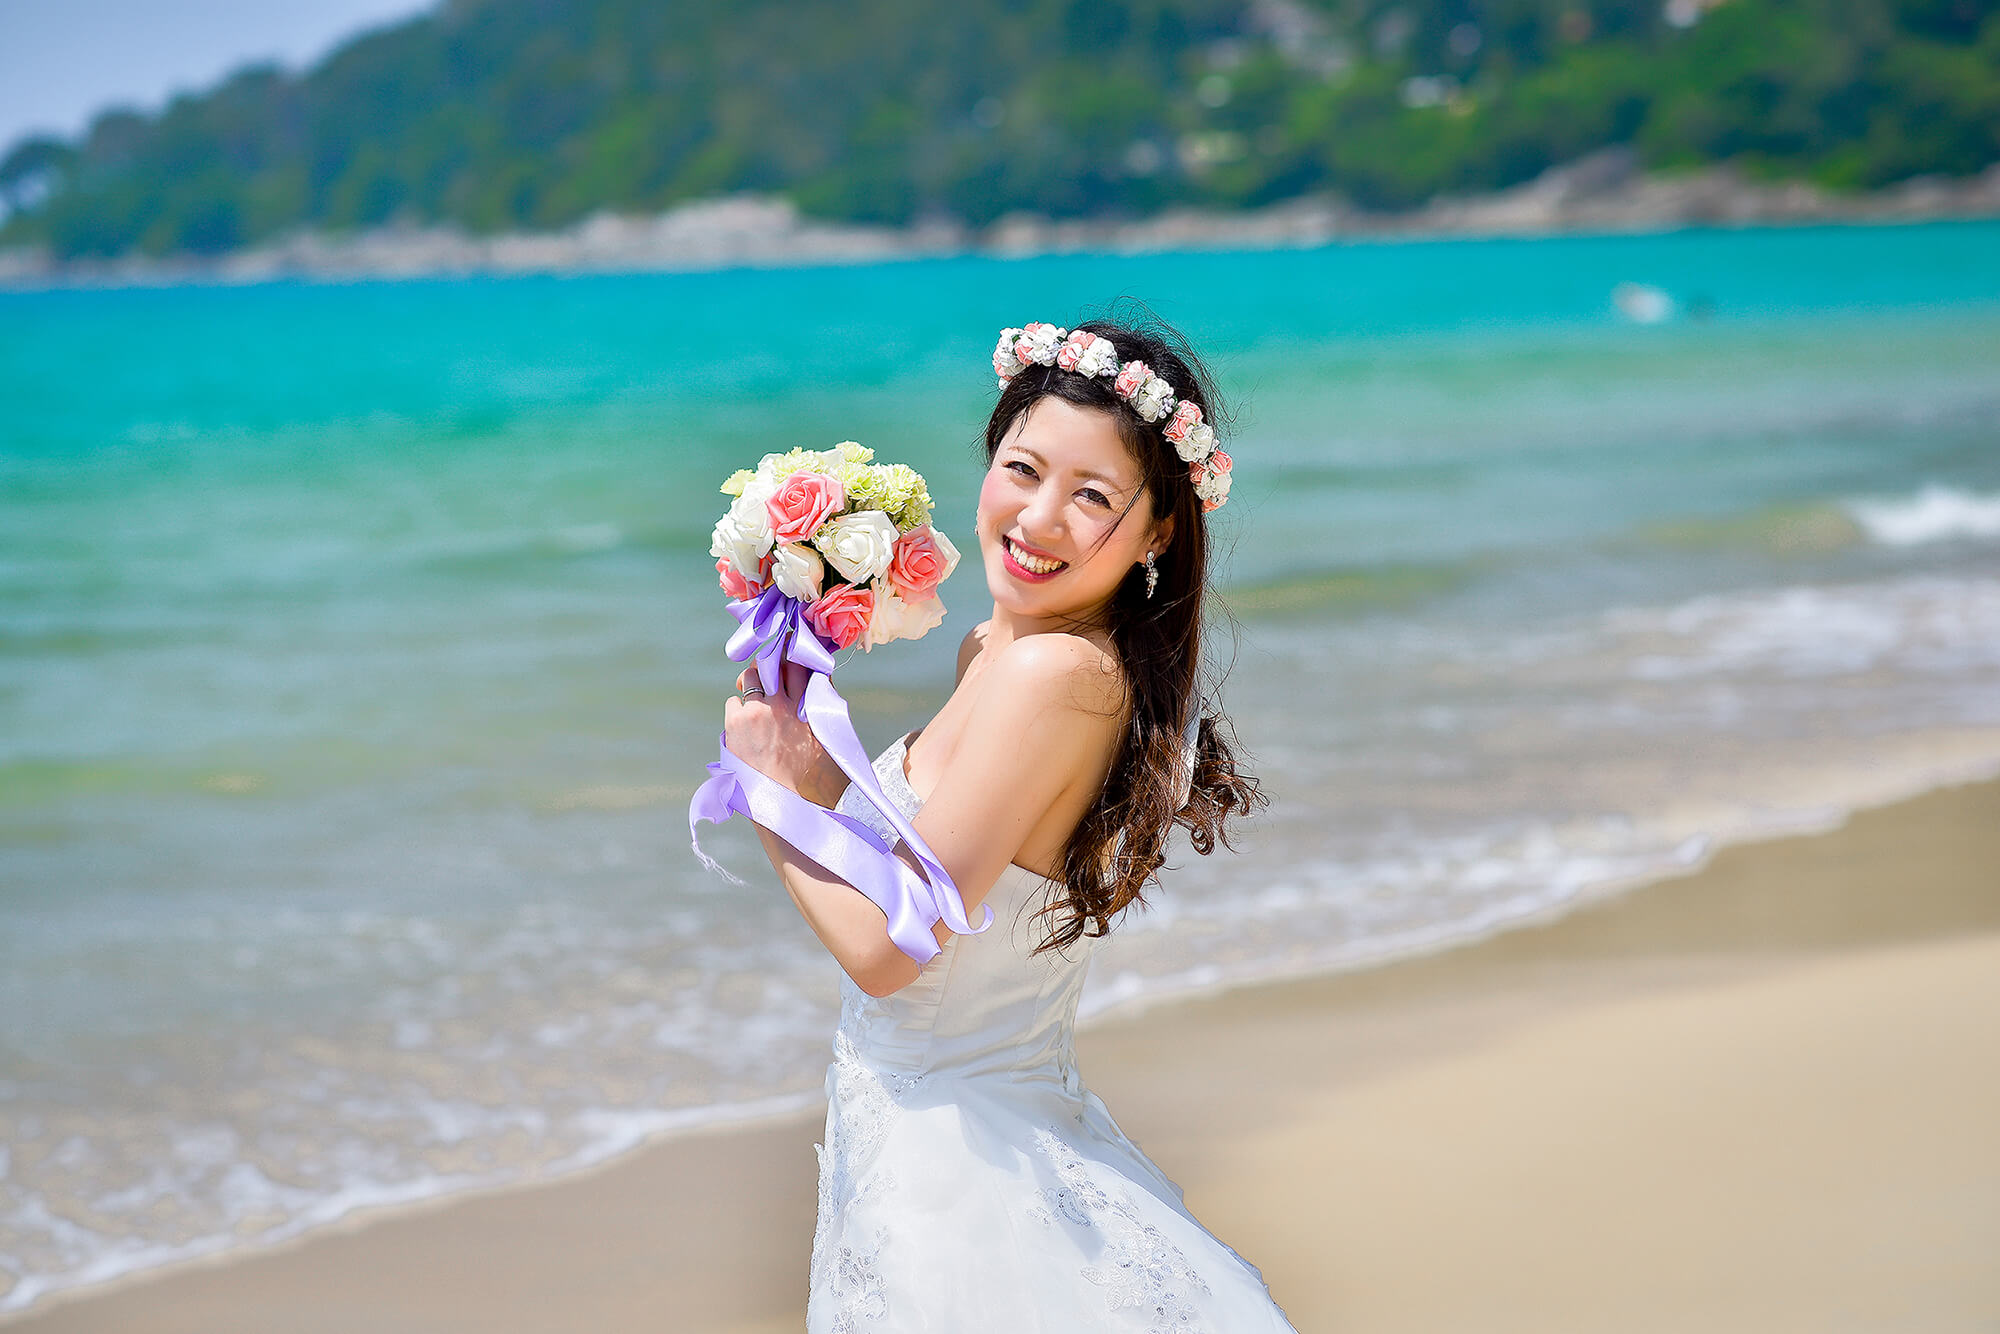 phuket-krabi-wedding-photoshoot7.jpg